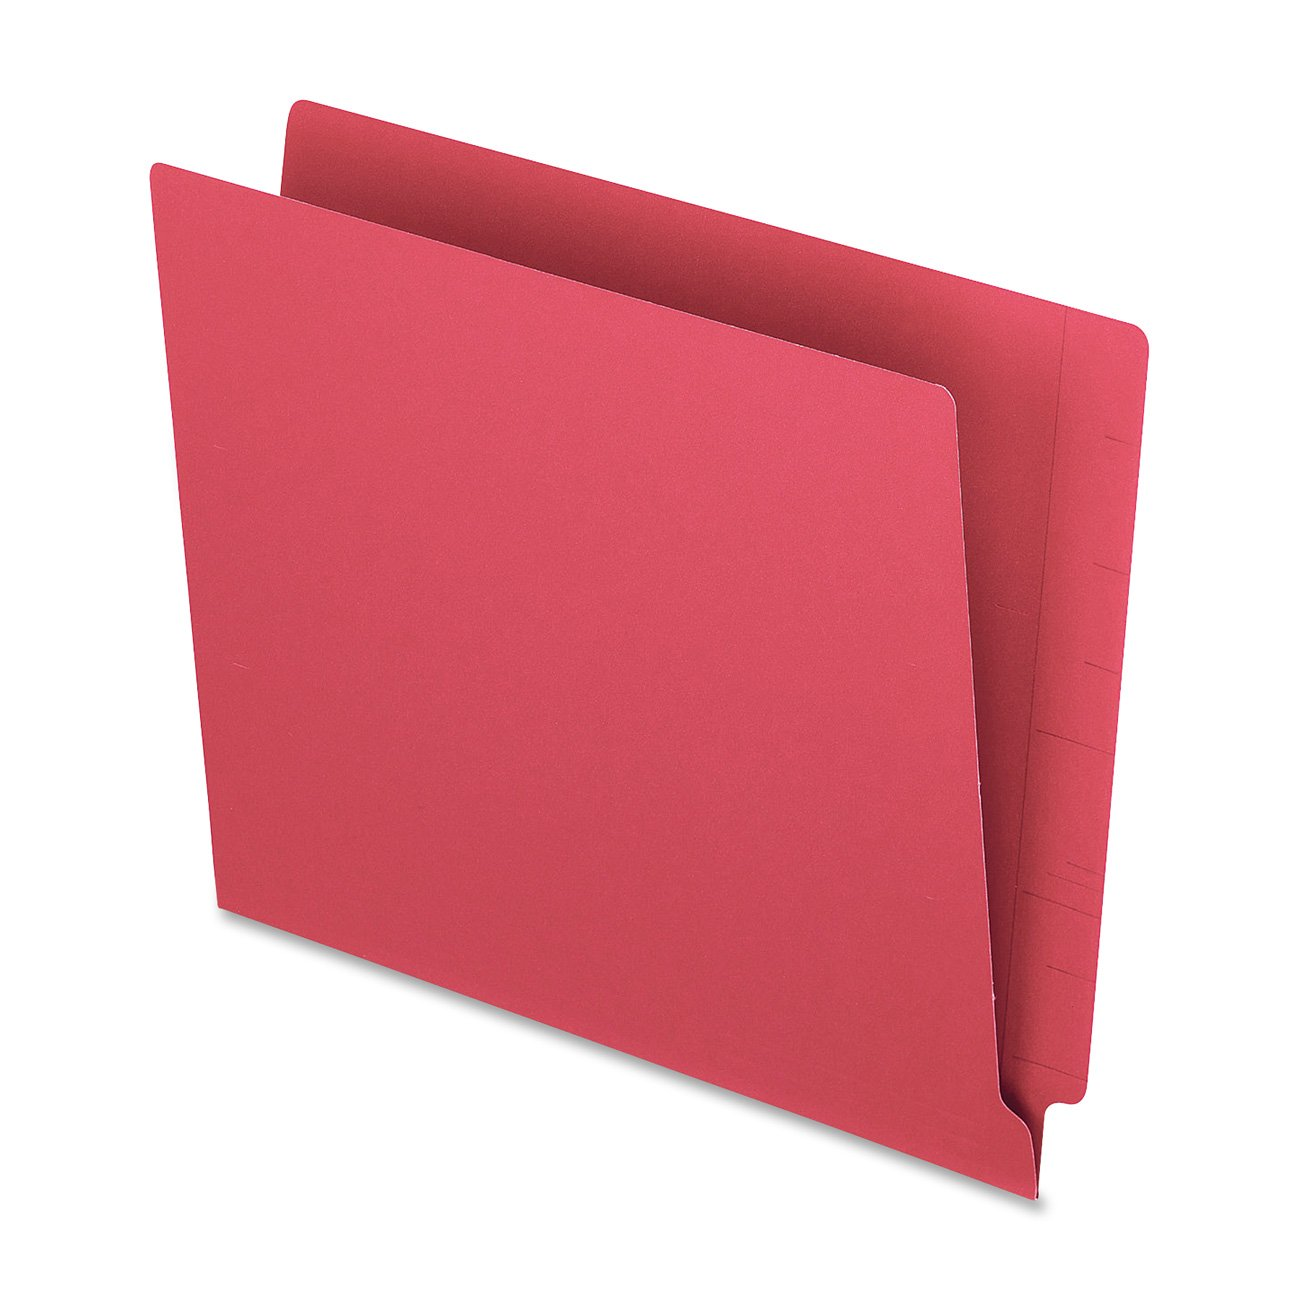 Pendaflex Colour End Tab Folders, Full Tab, Letter, Red, 100/Box Esselte H110DR